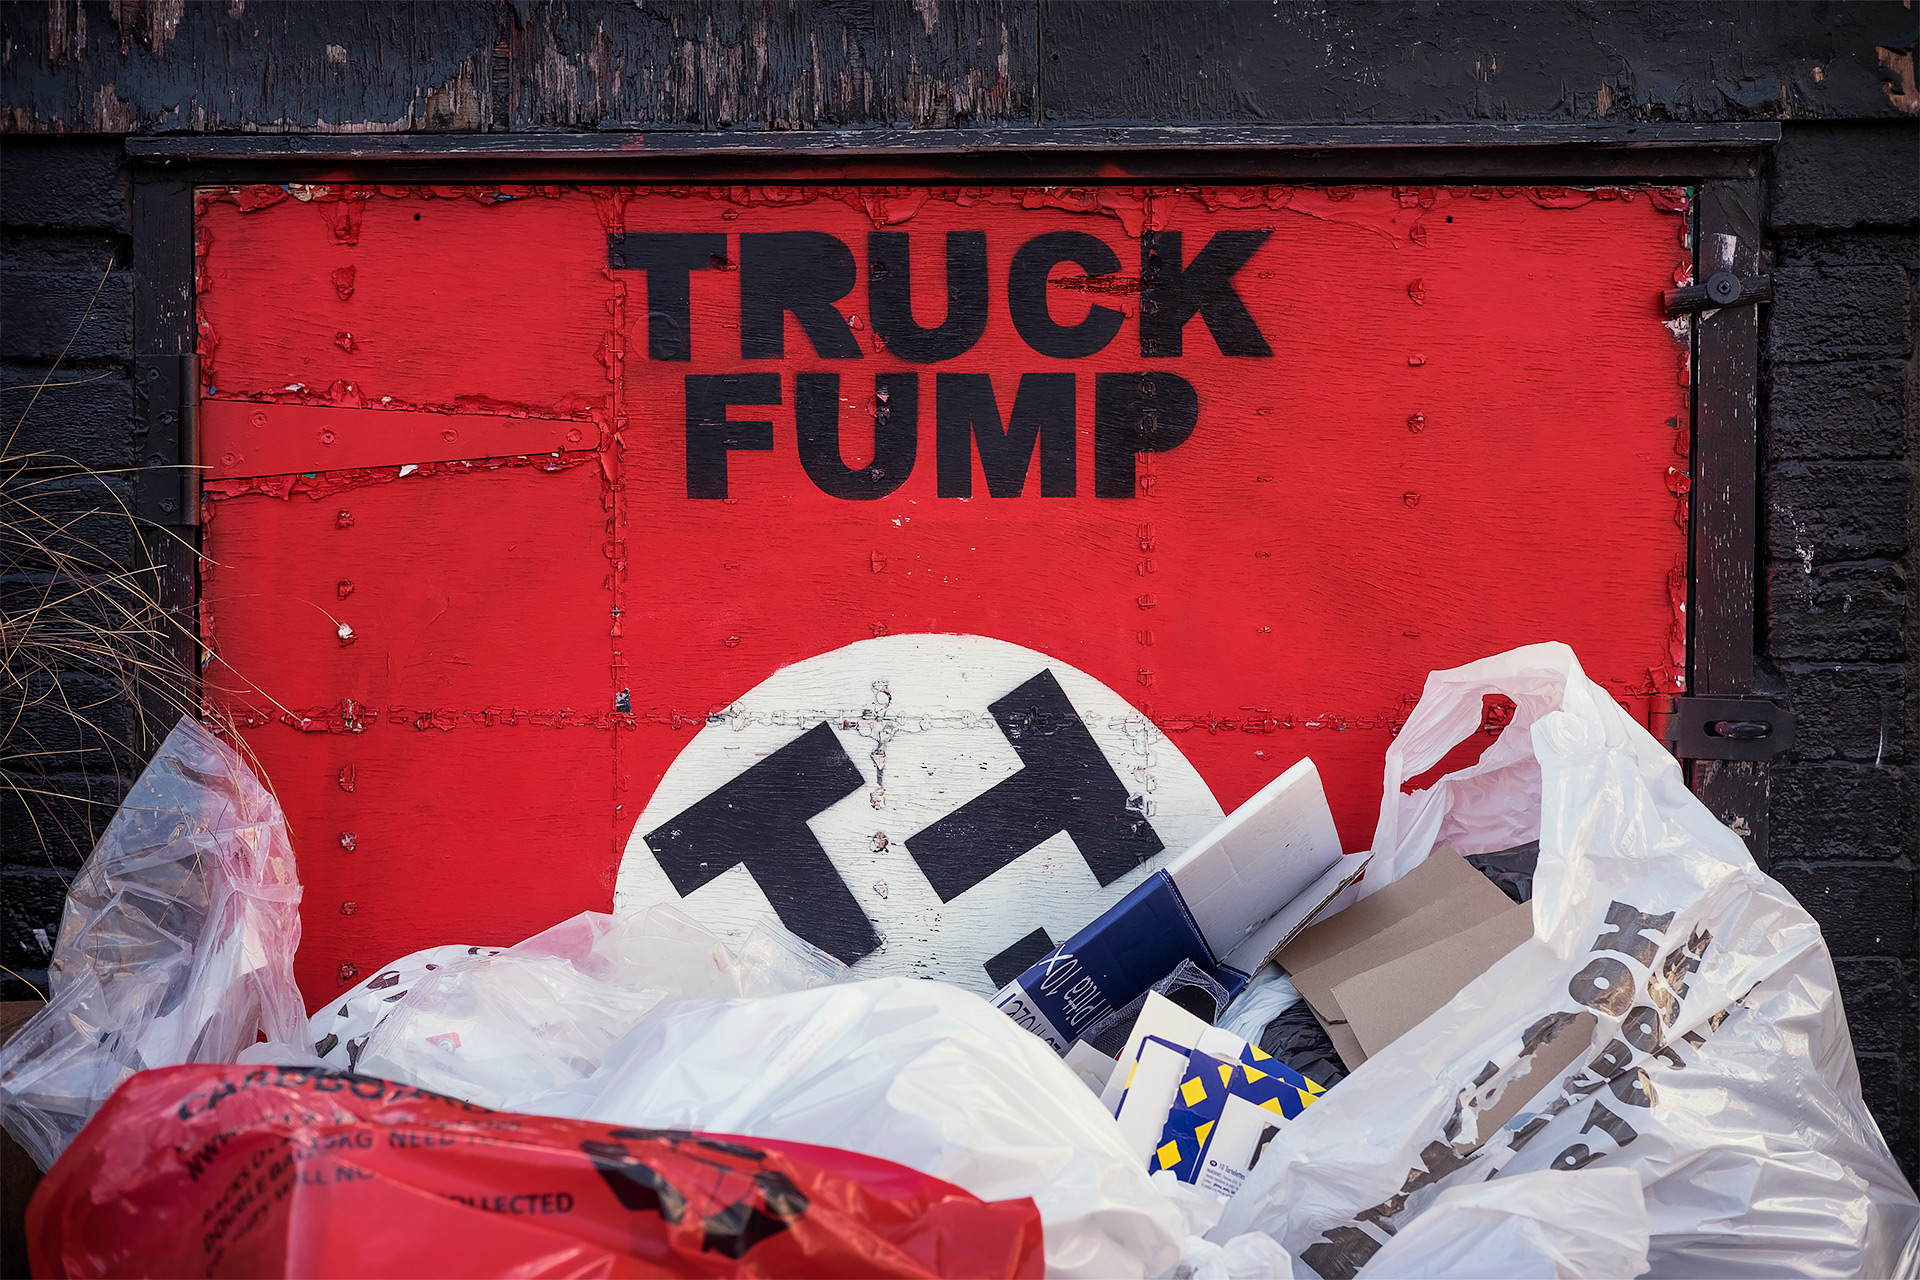 Truck Fump - Street Photography Show the Original Photography - truck fump final